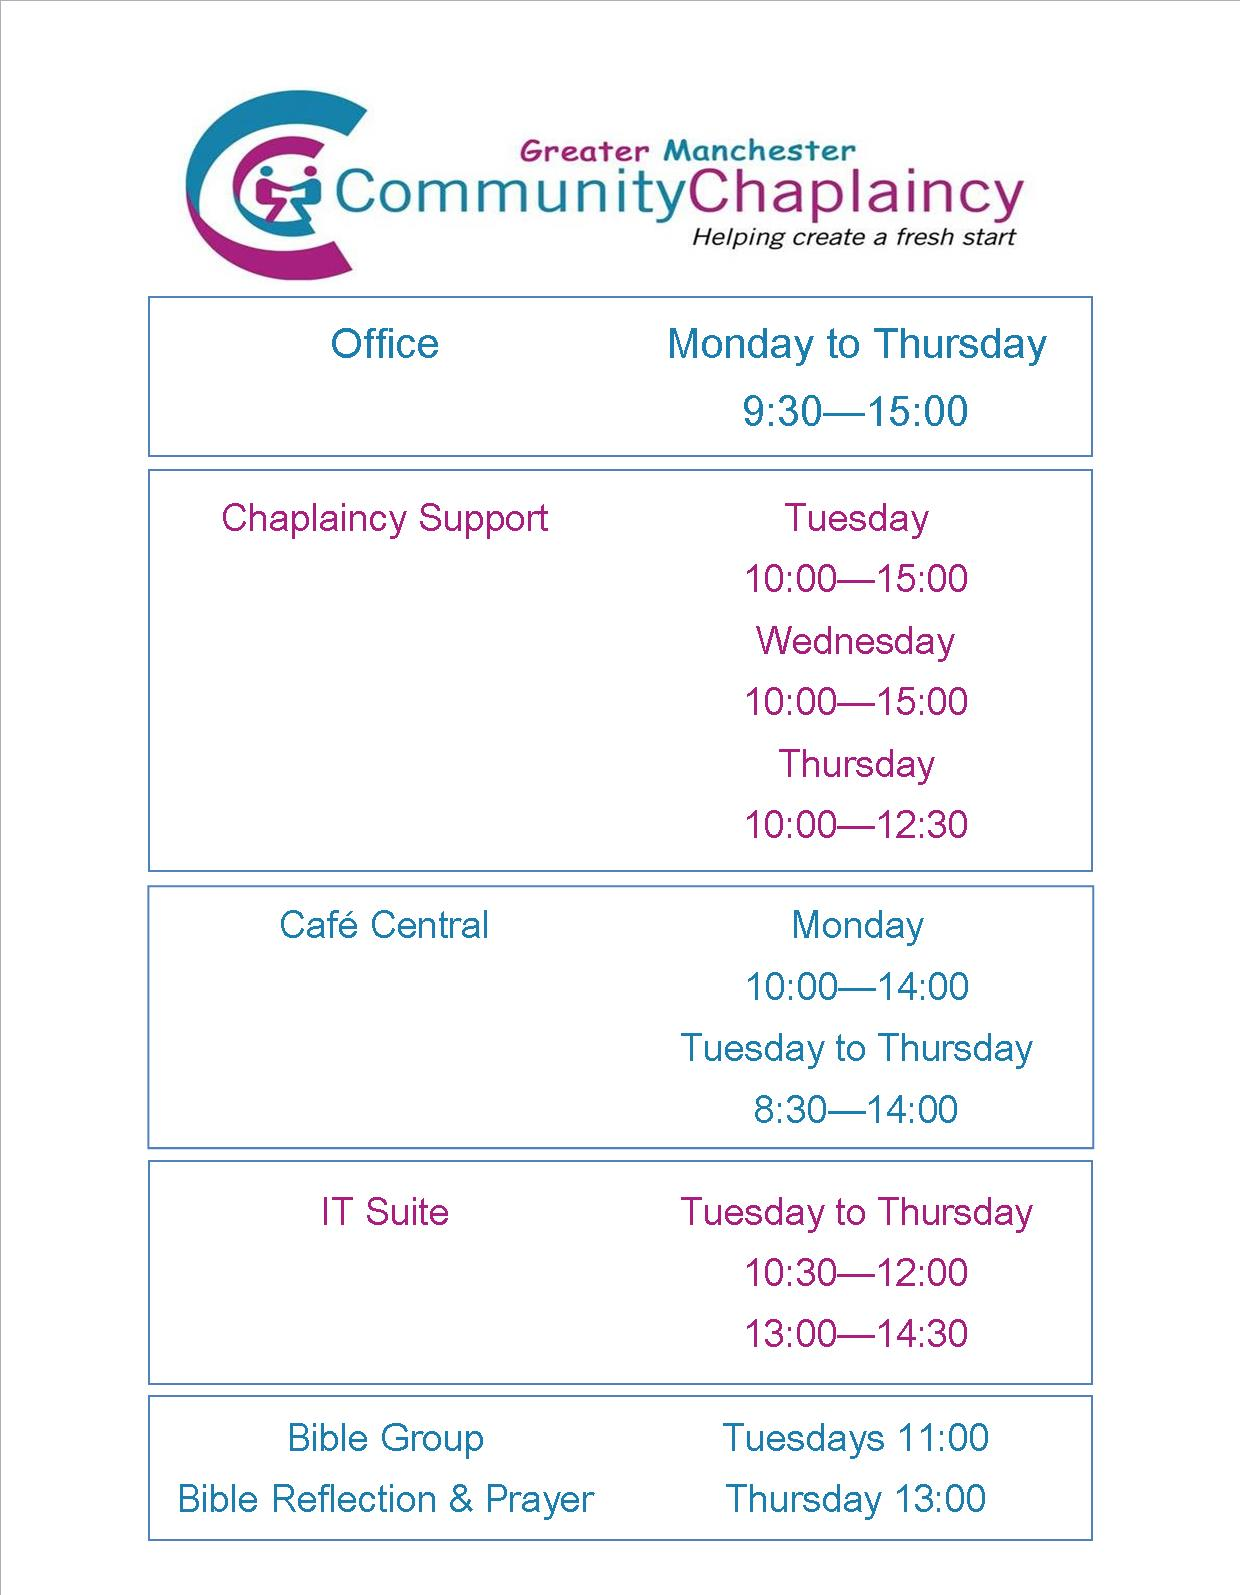 Greater Manchester Community Chaplaincy – Greater Manchester